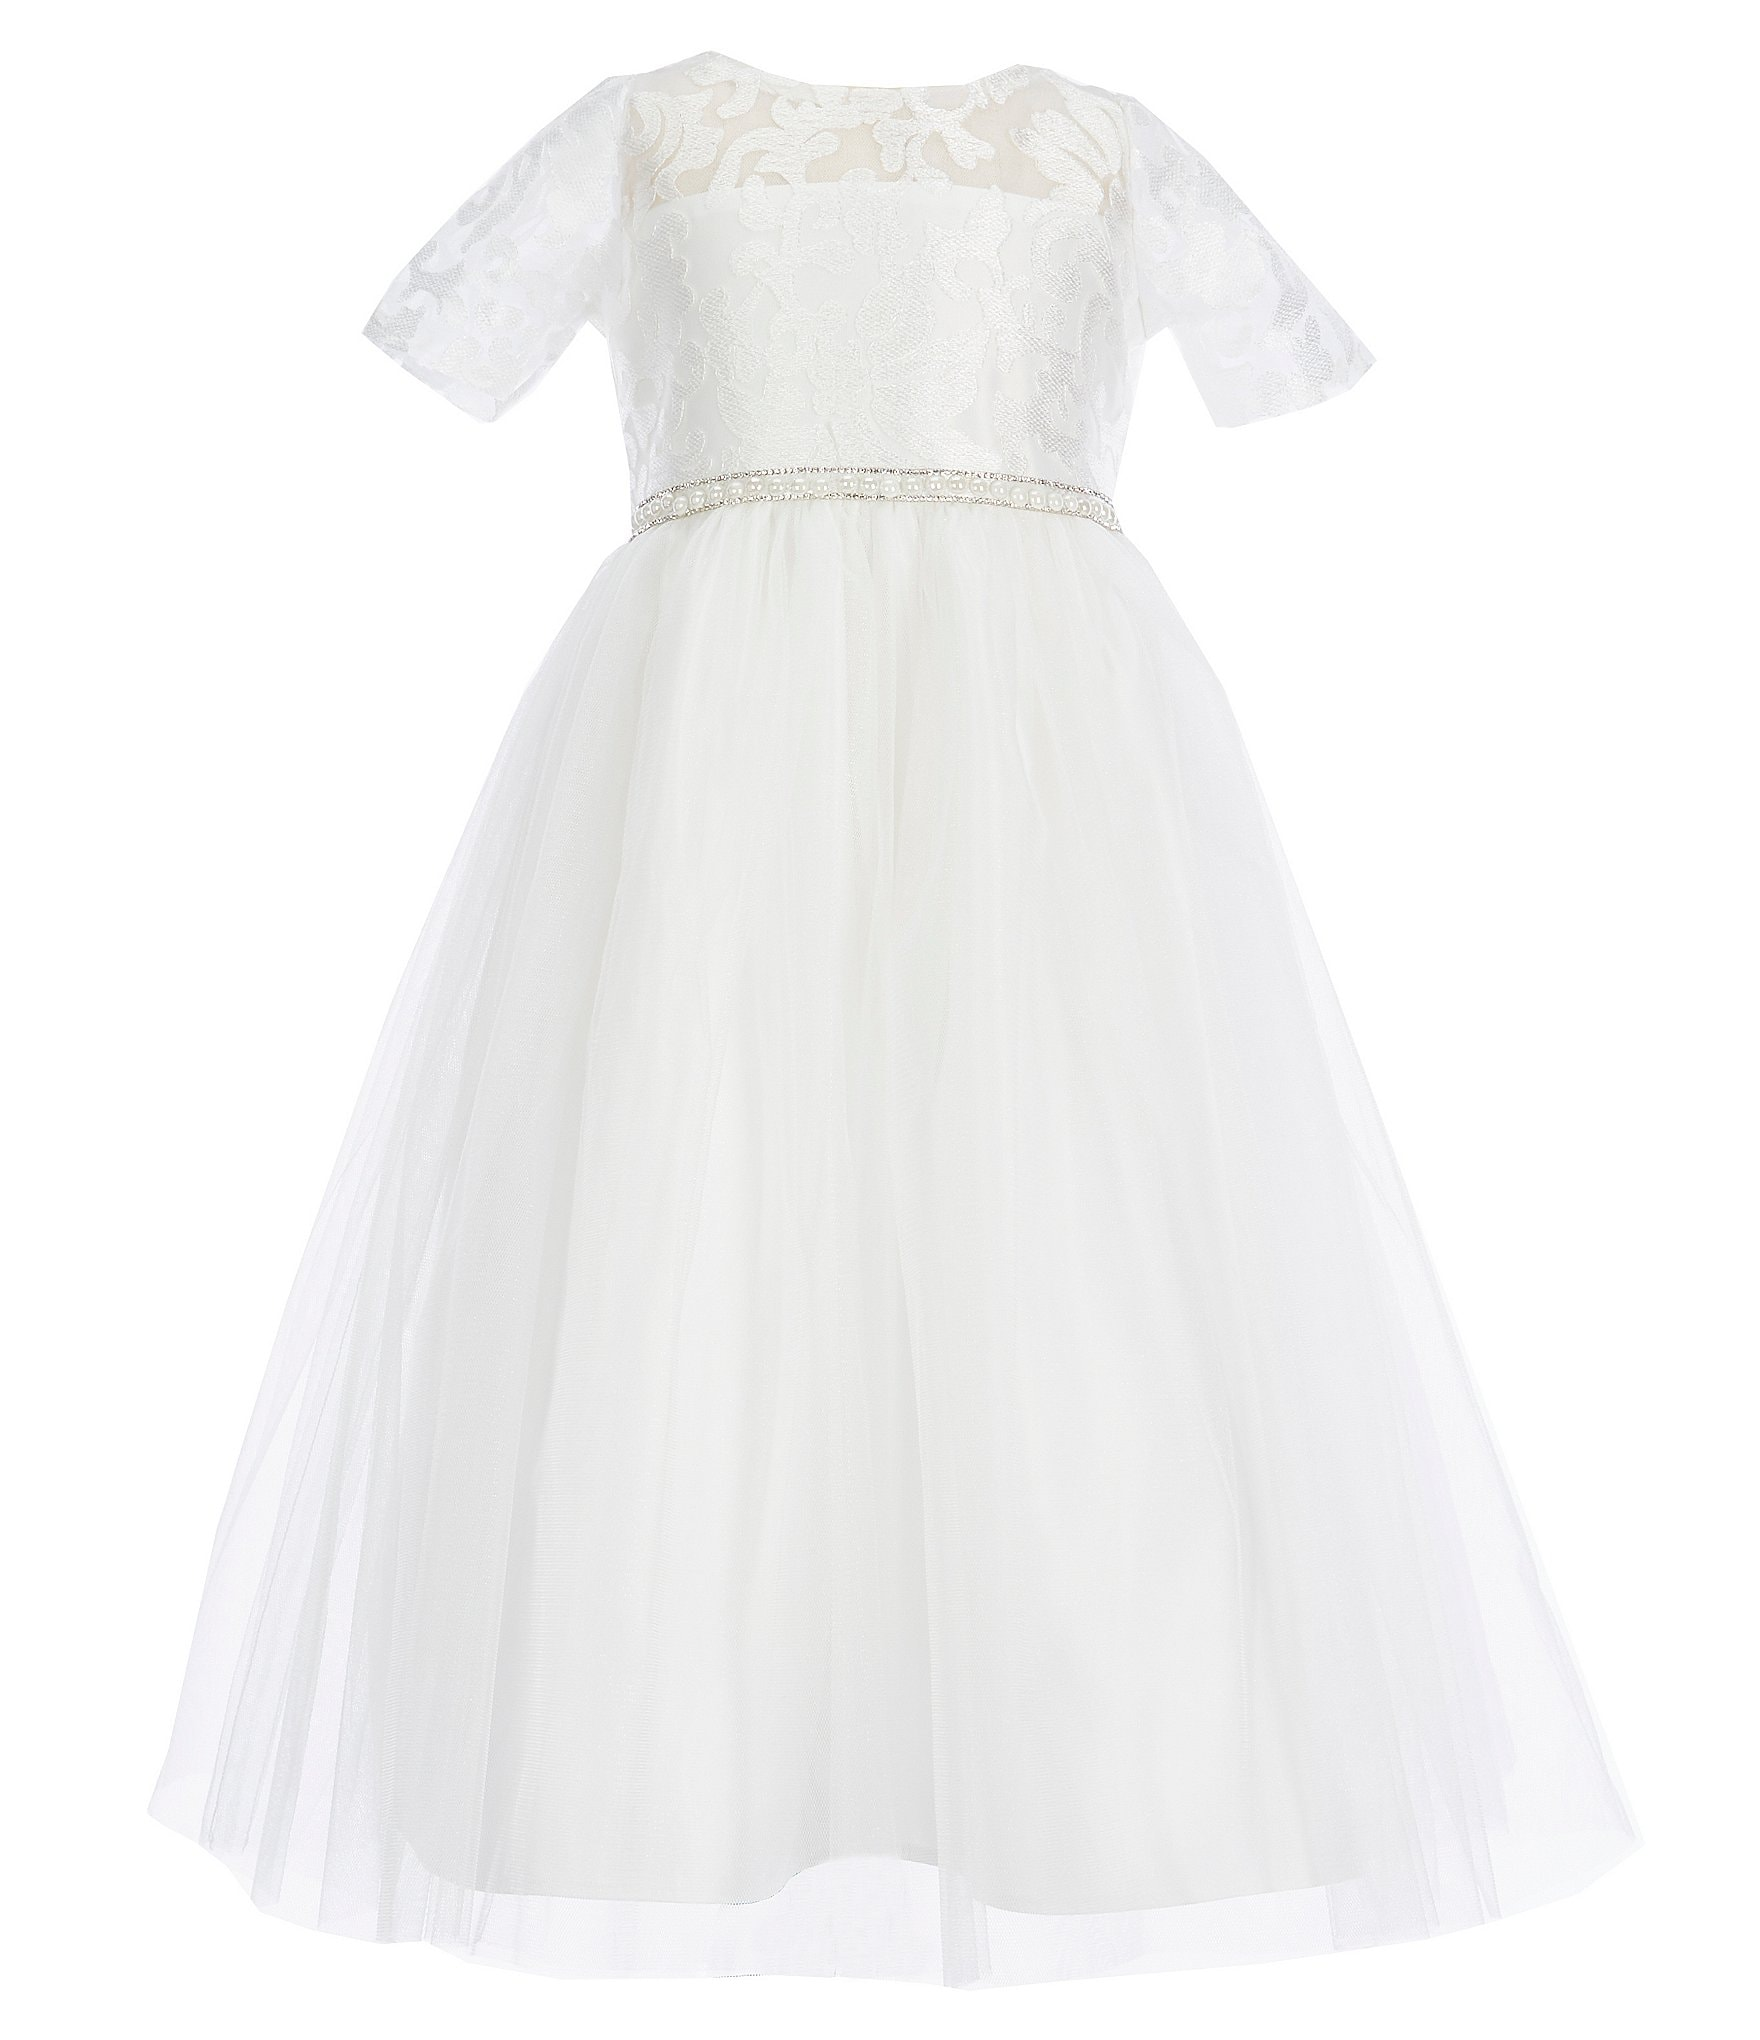 aa507689 Ivory Girls' Special Occasion Dresses 2T-6X | Dillard's